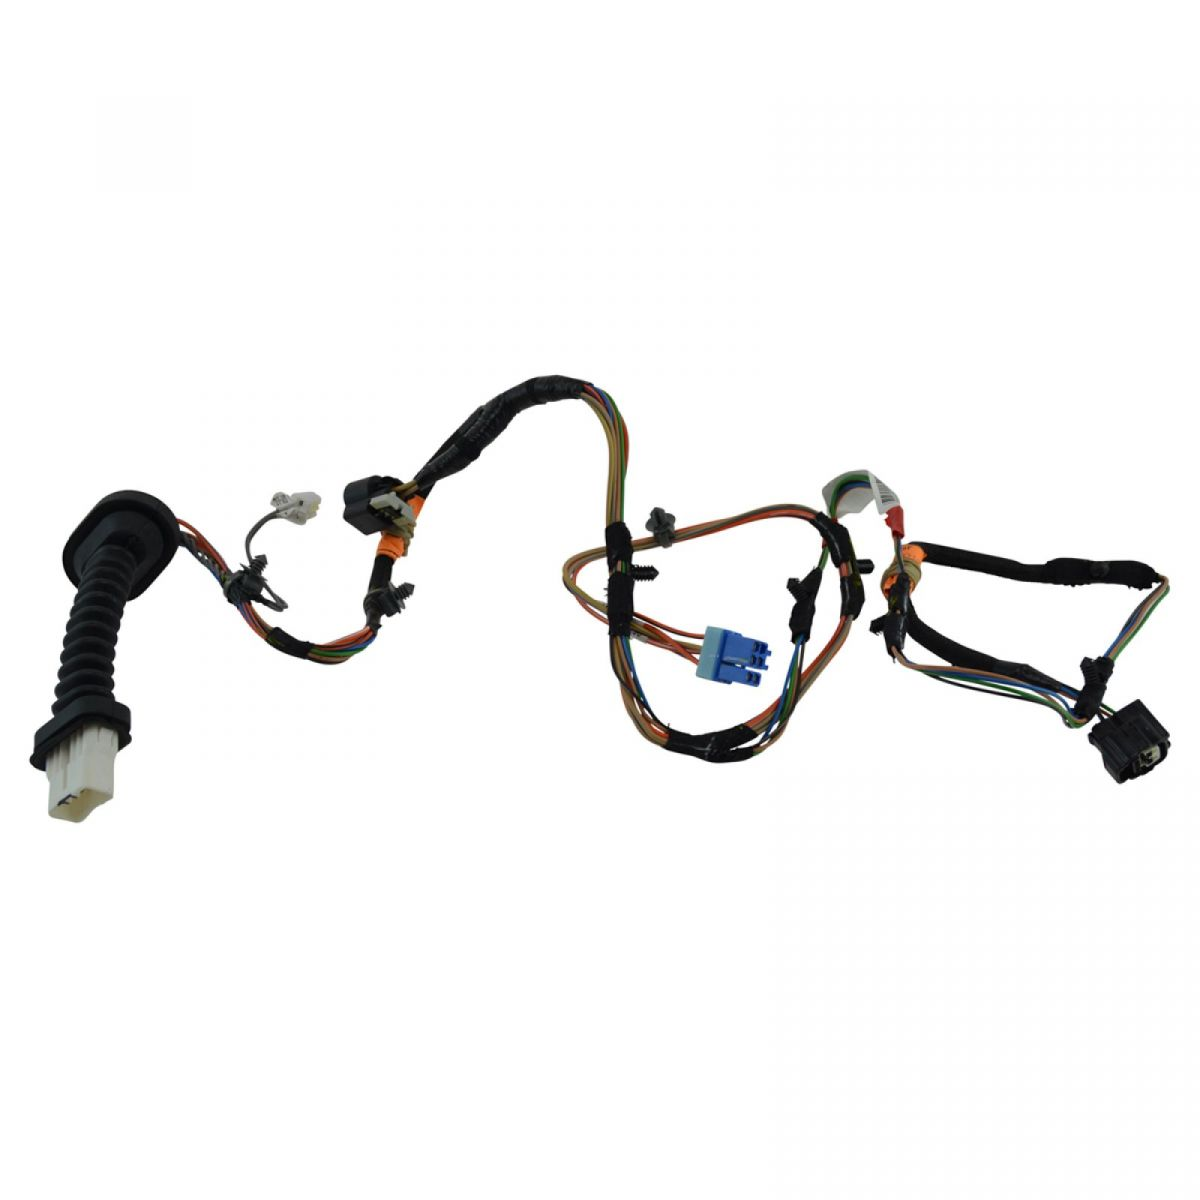 AM 3783557712 oem 56051393ac rear door wiring harness for 06 09 dodge ram mega 2002 dodge ram 1500 rear door wiring harness at gsmportal.co